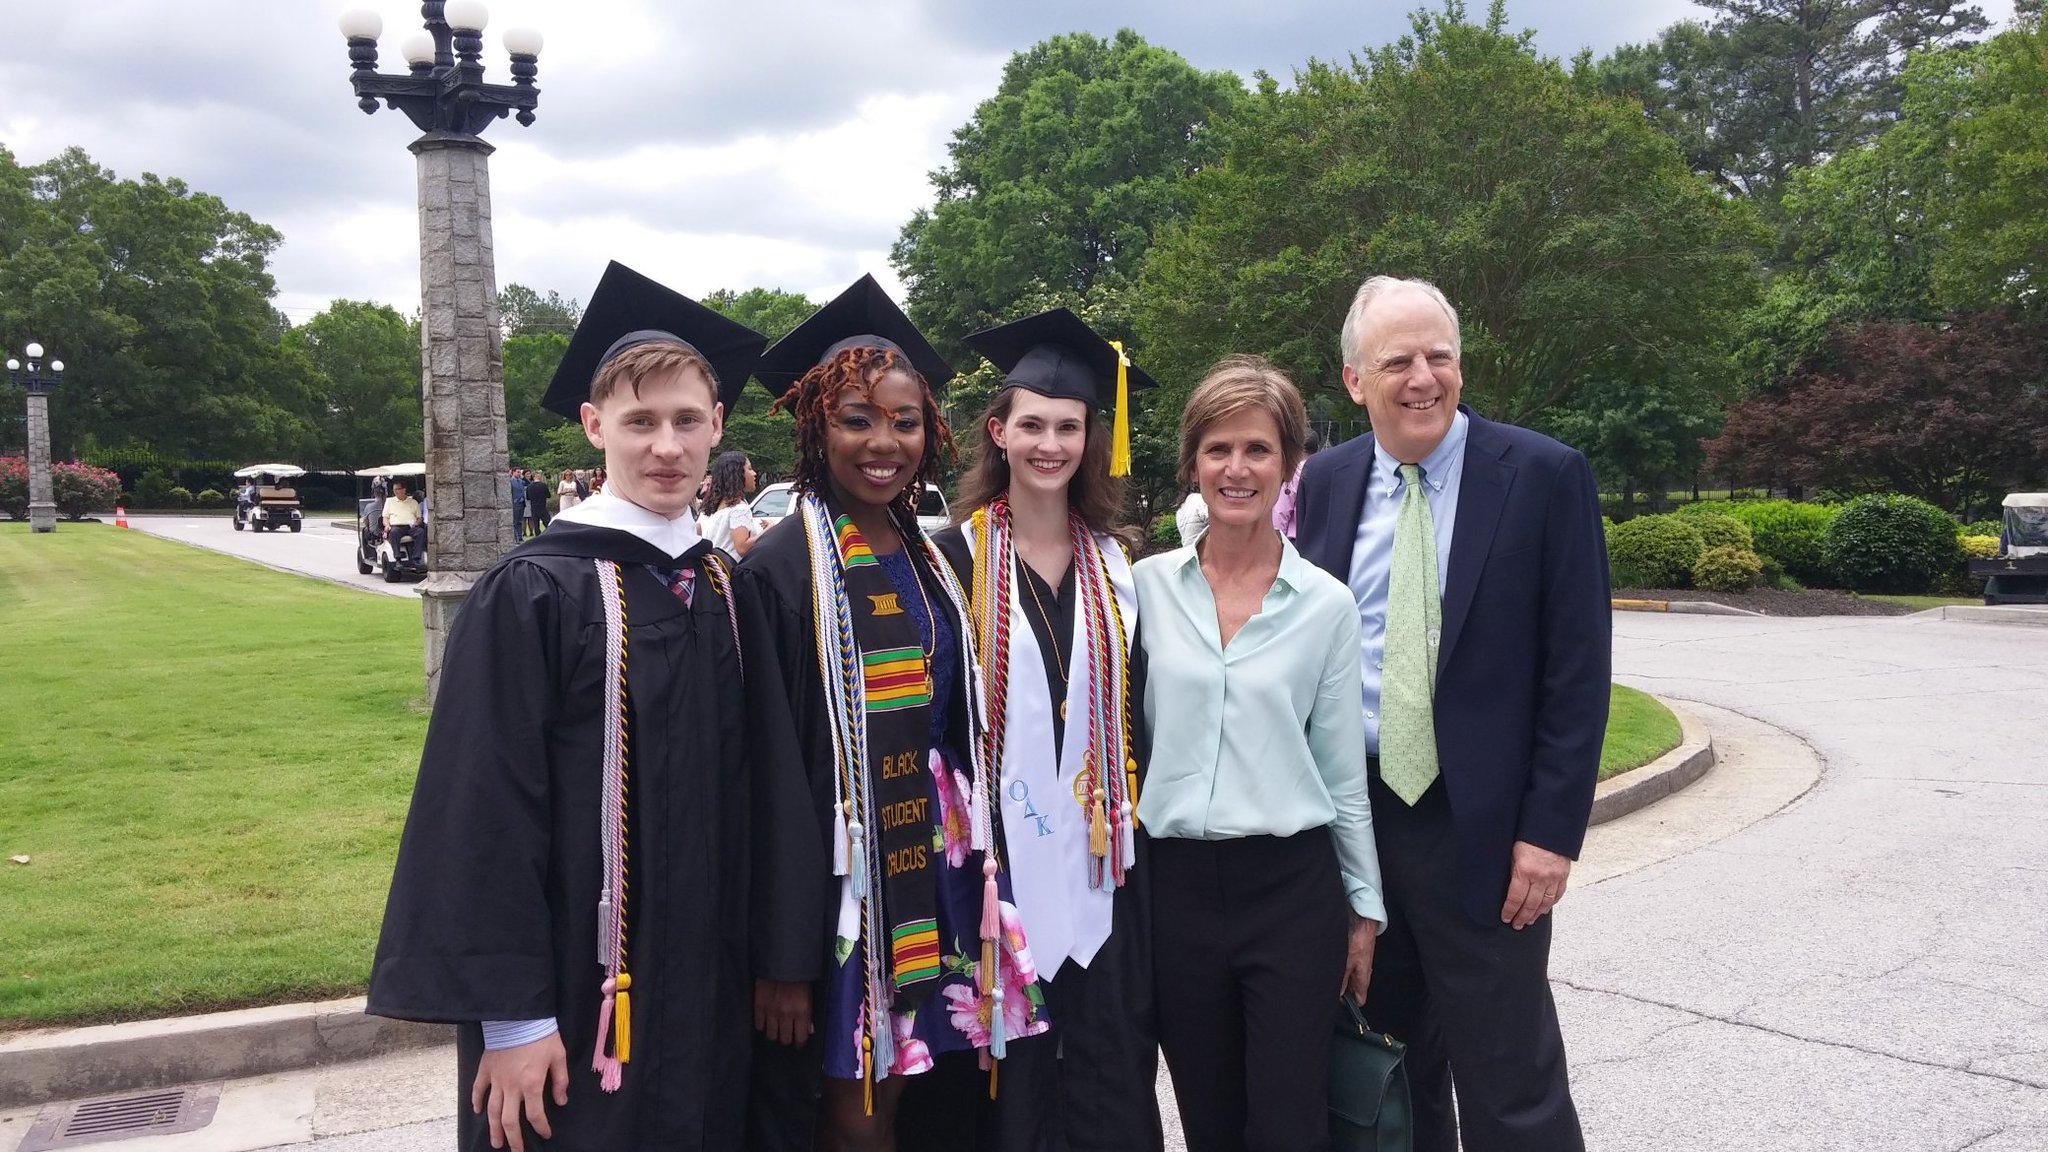 We got to meet @SallyQYates at the Oglethorpe University graduation ceremony! 😮 #graduation2017 https://t.co/bIeh3CJpsw